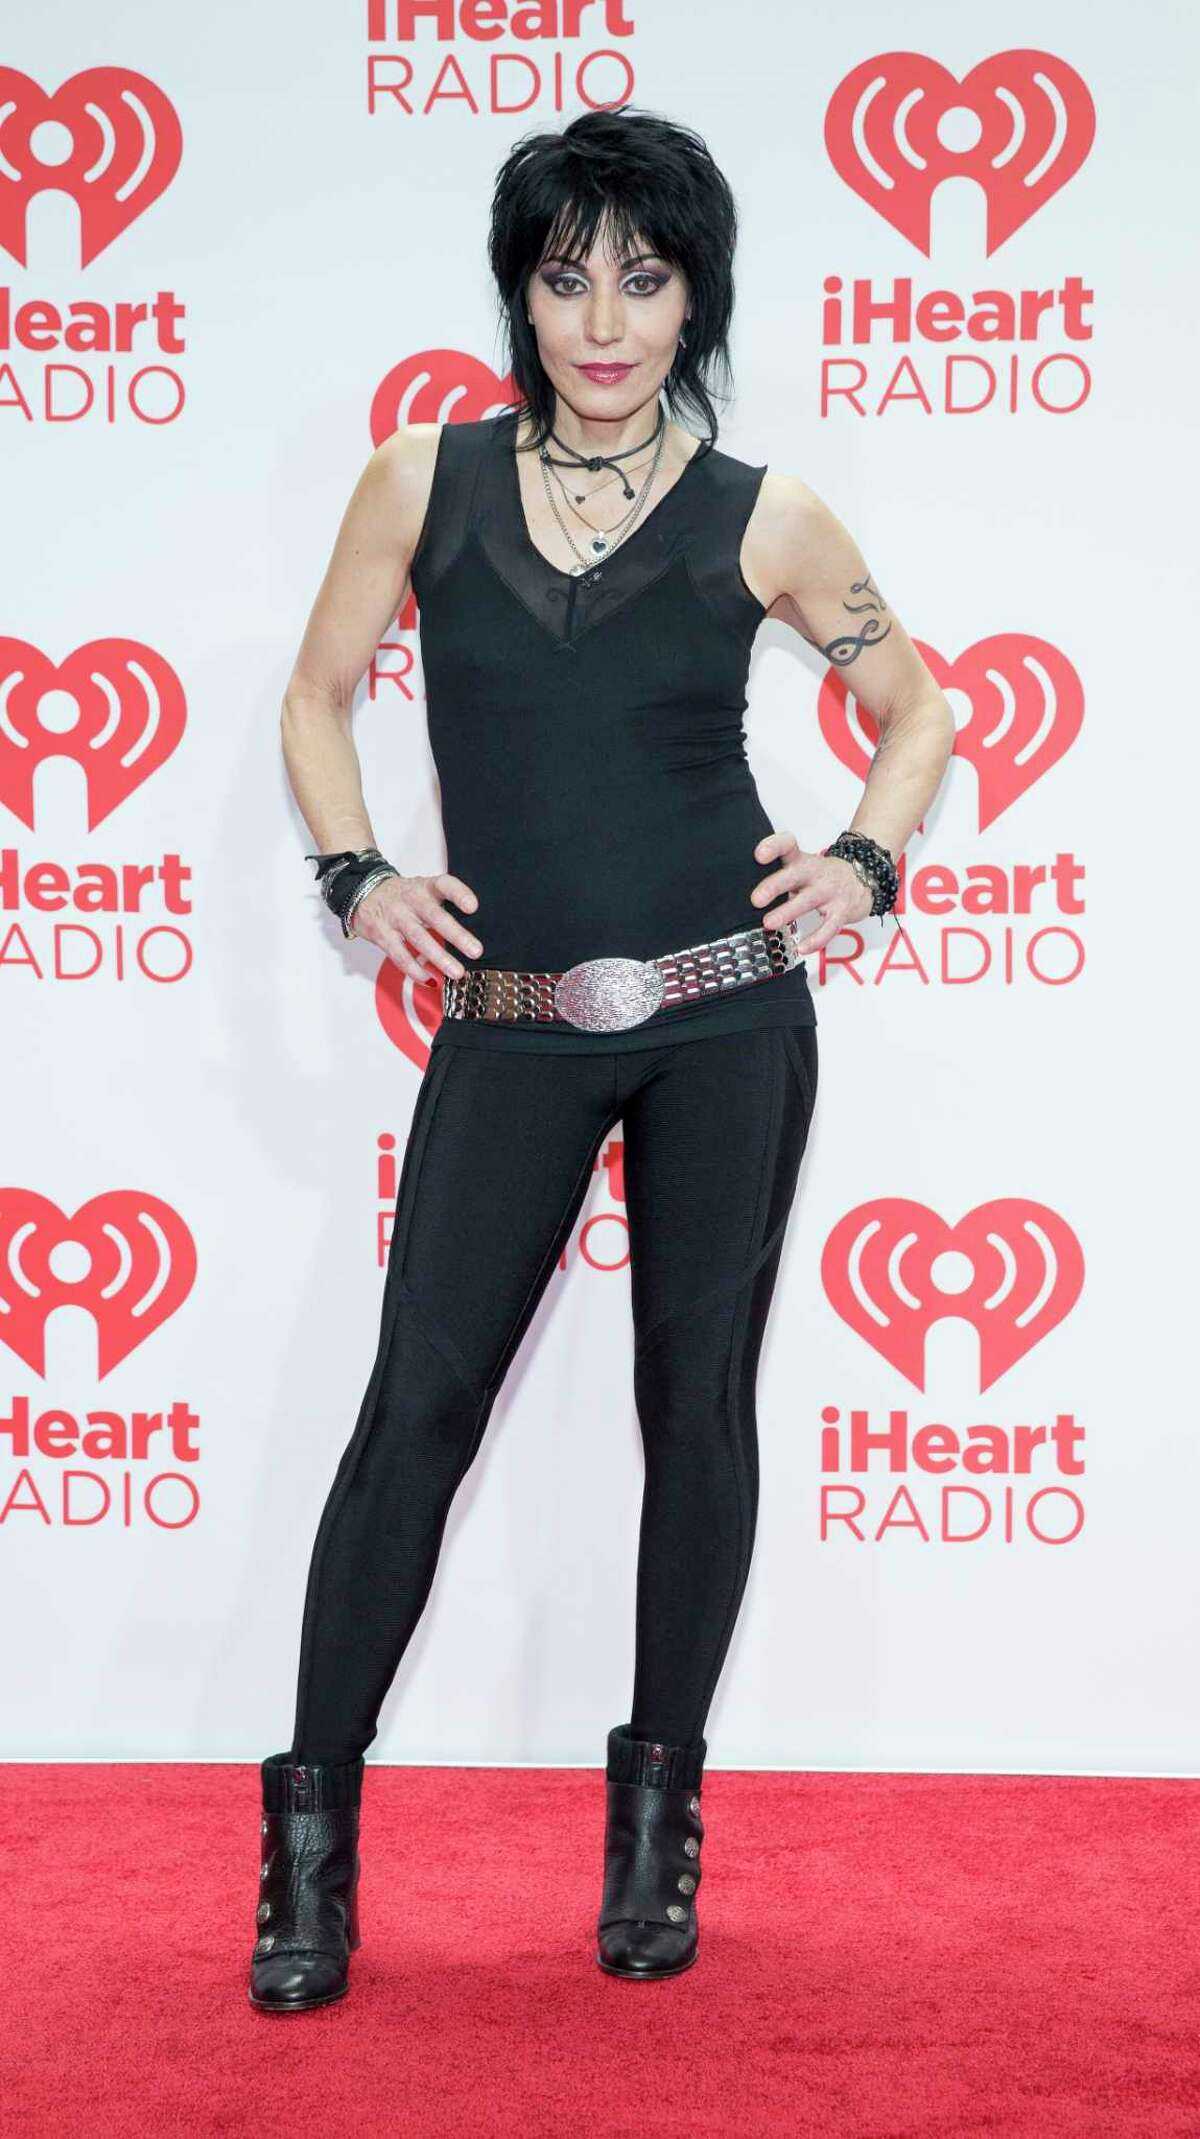 FILE - This Sept. 21, 2013 file photo shows musician Joan Jett at the iHeartRadio Music Festival in Las Vegas. Jett will be honored with the Golden God Award, given to an artist who ?